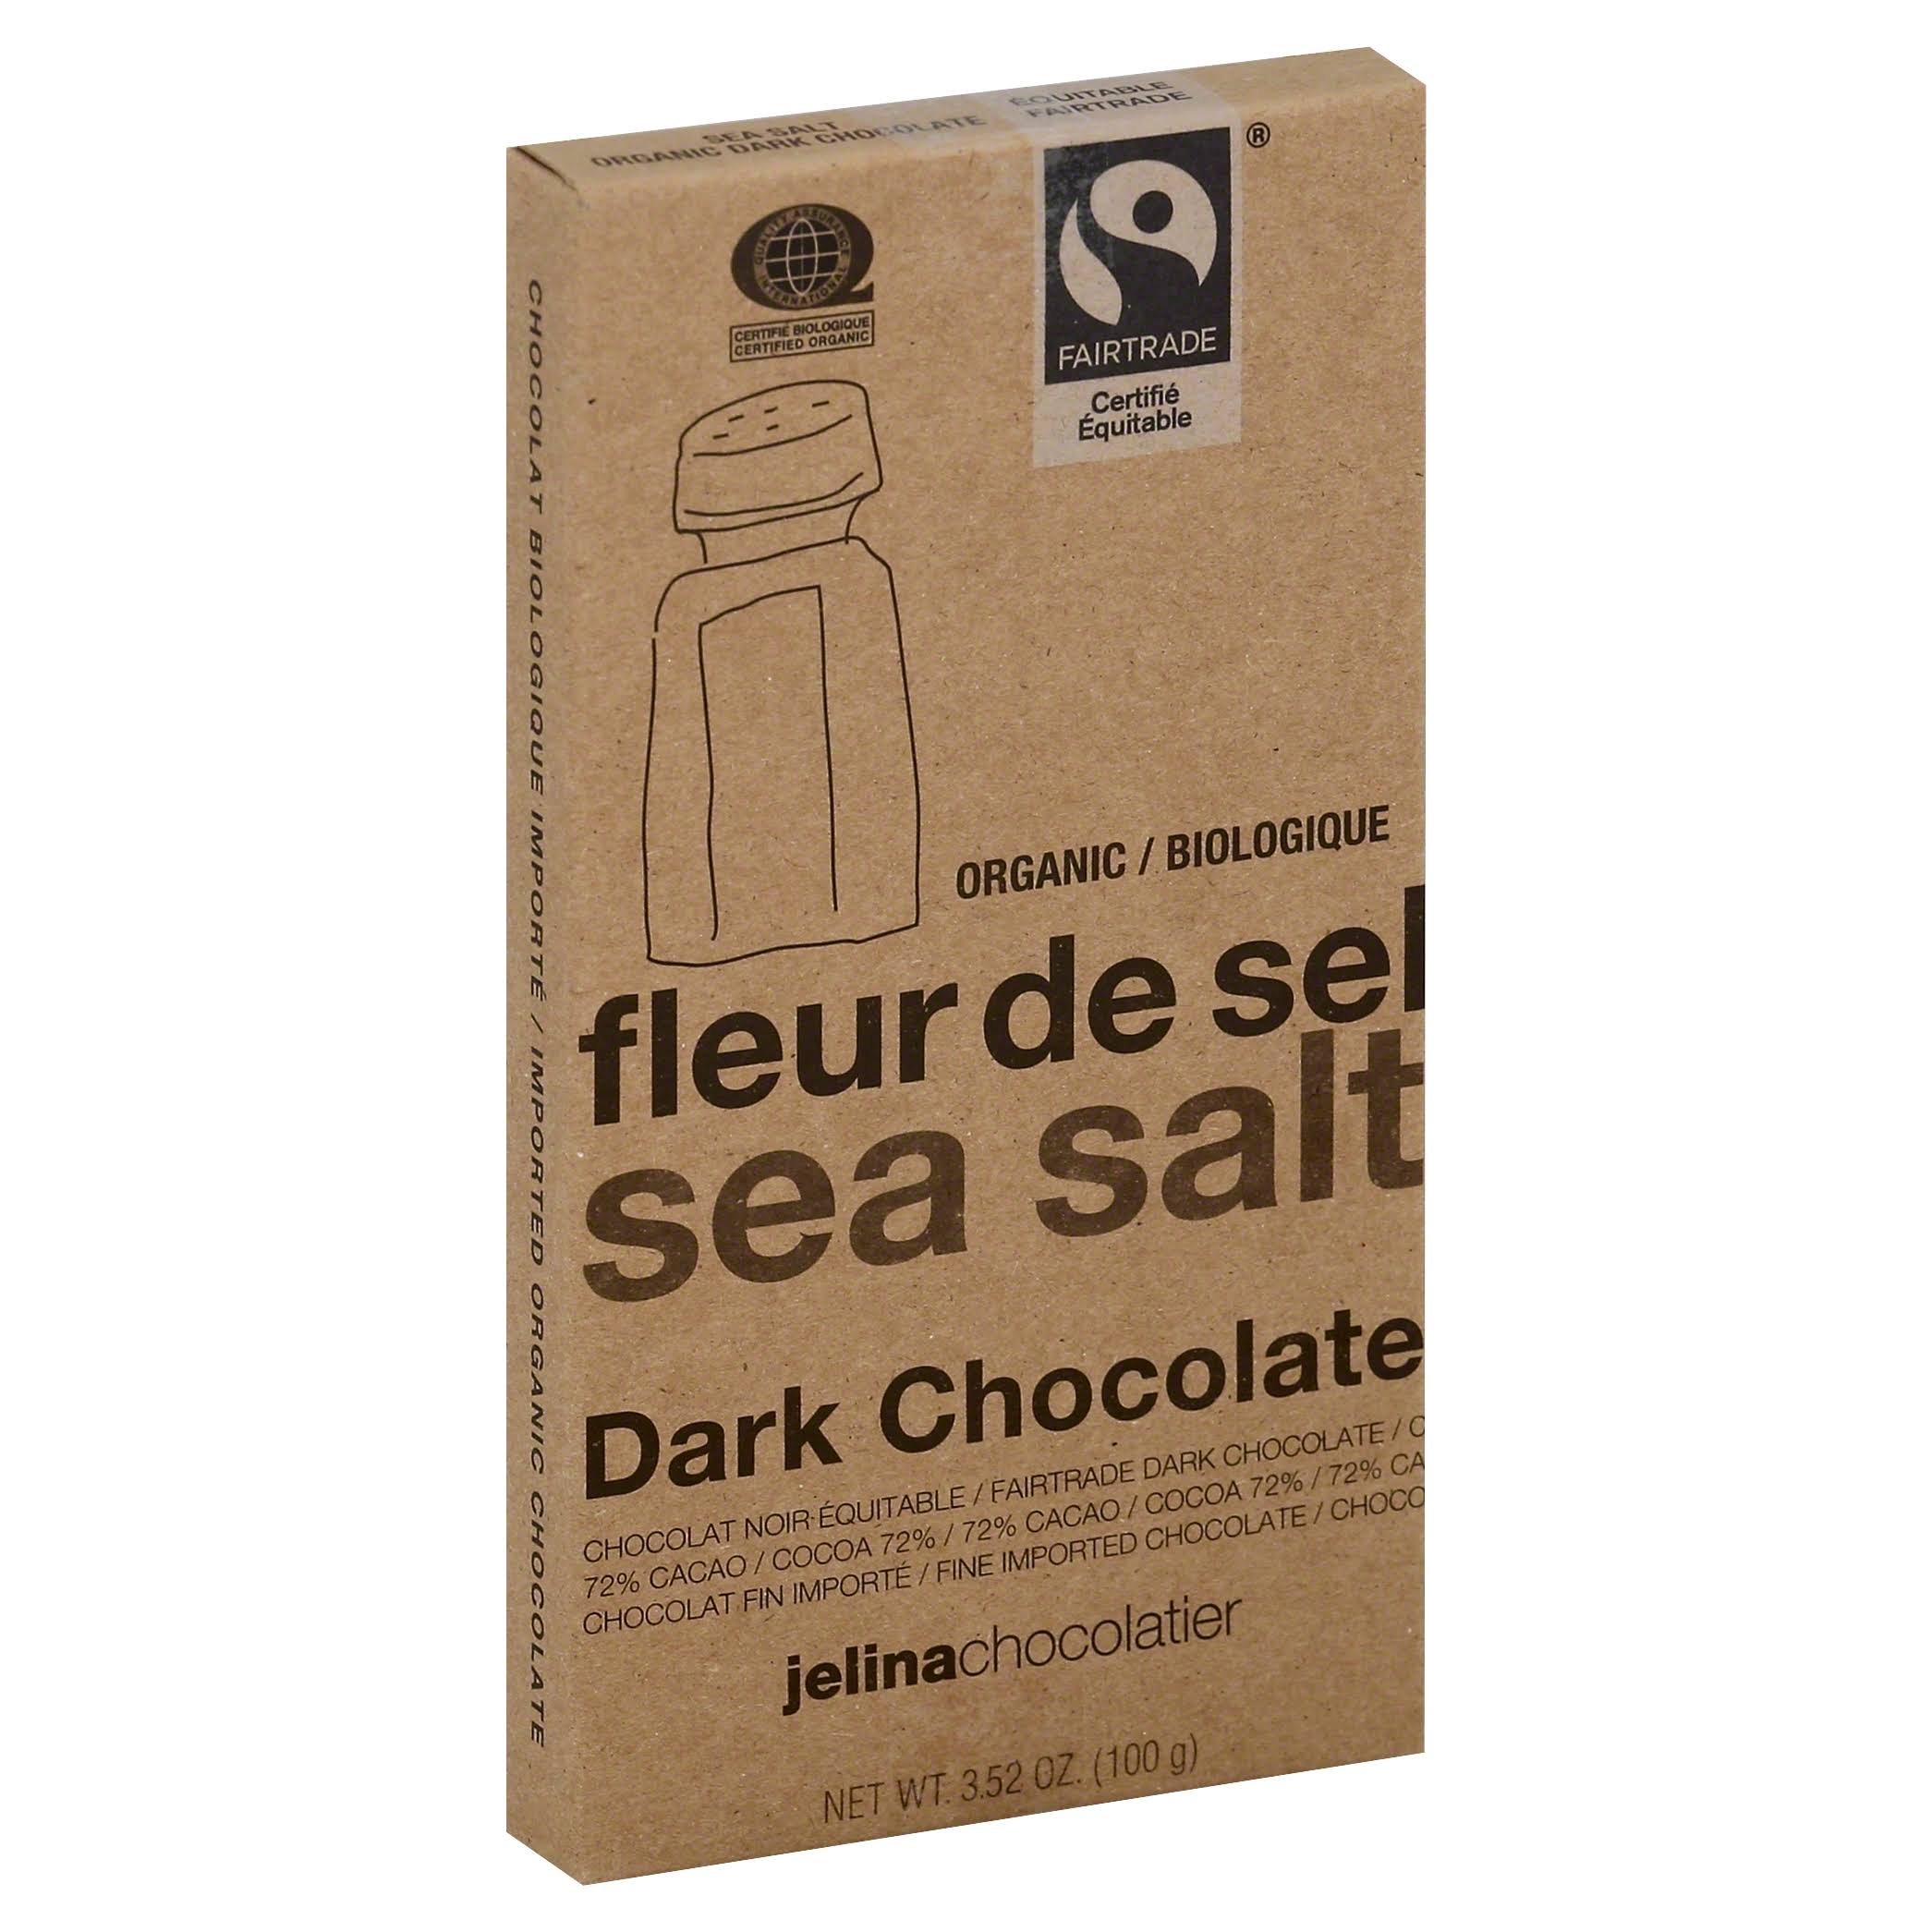 Jelina Chocolatier Dark Chocolate - Sea Salt, 3.35oz